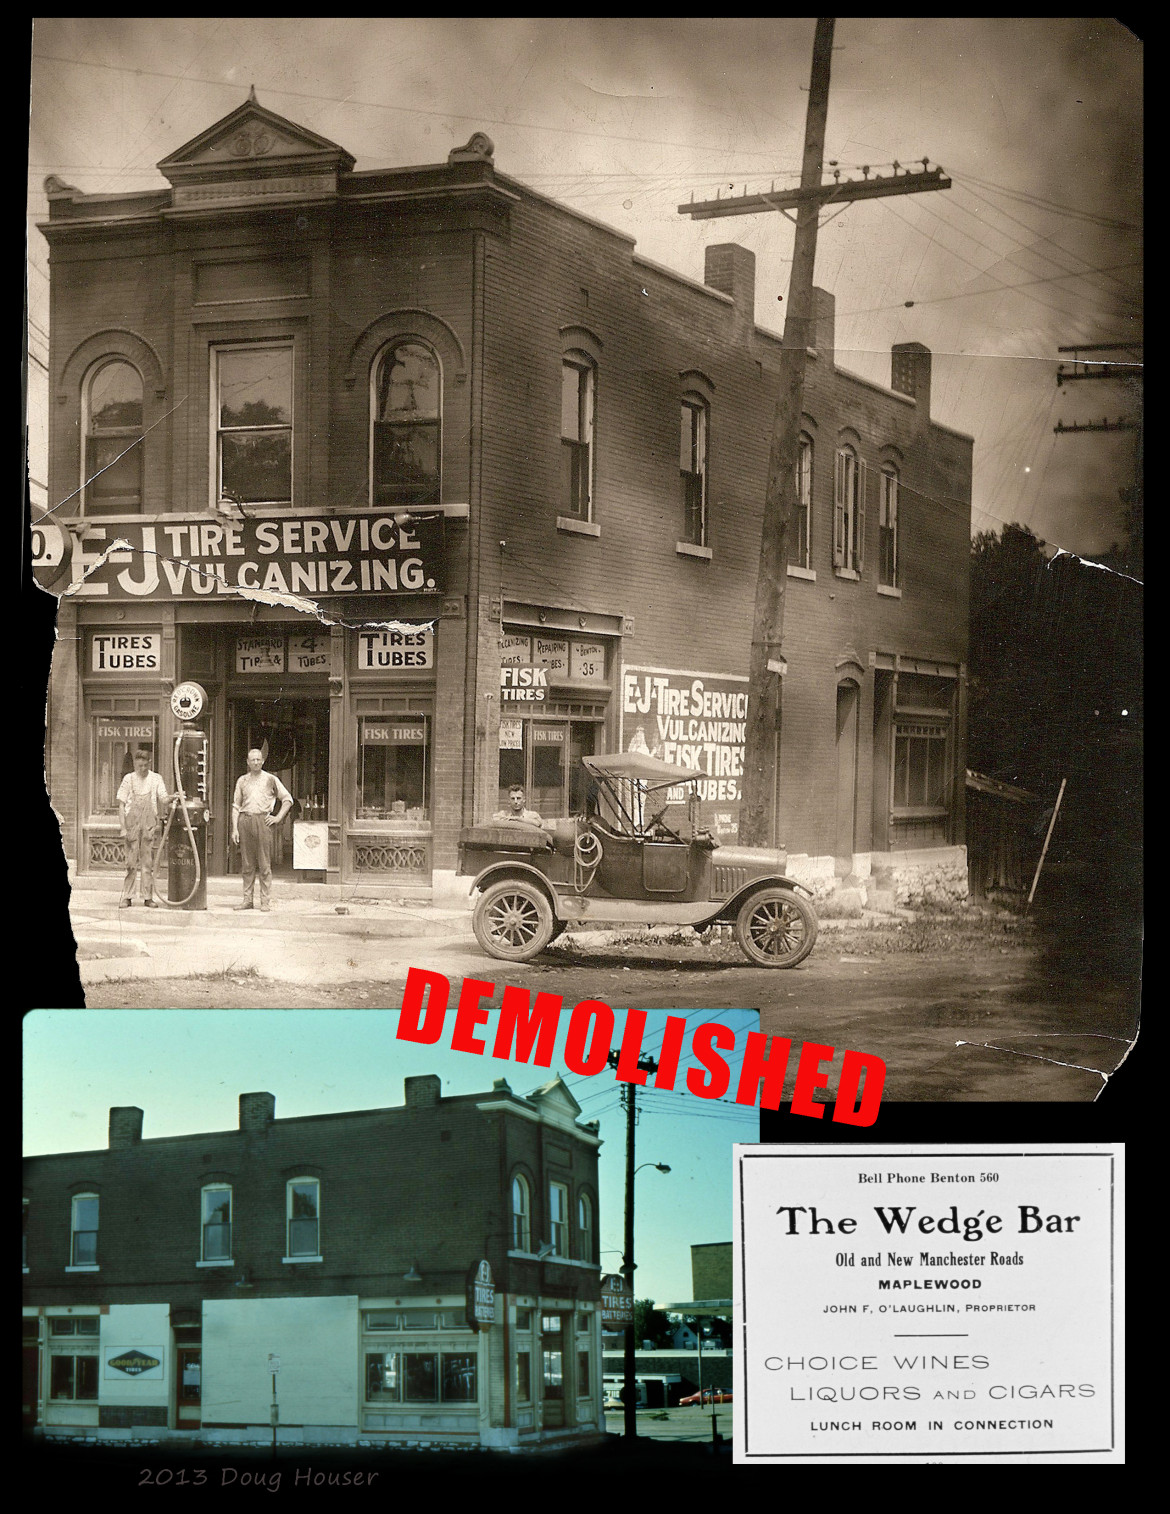 The Wedge, located at Manchester and Southwest, was another wonderful building that was demolished unnecessarily.